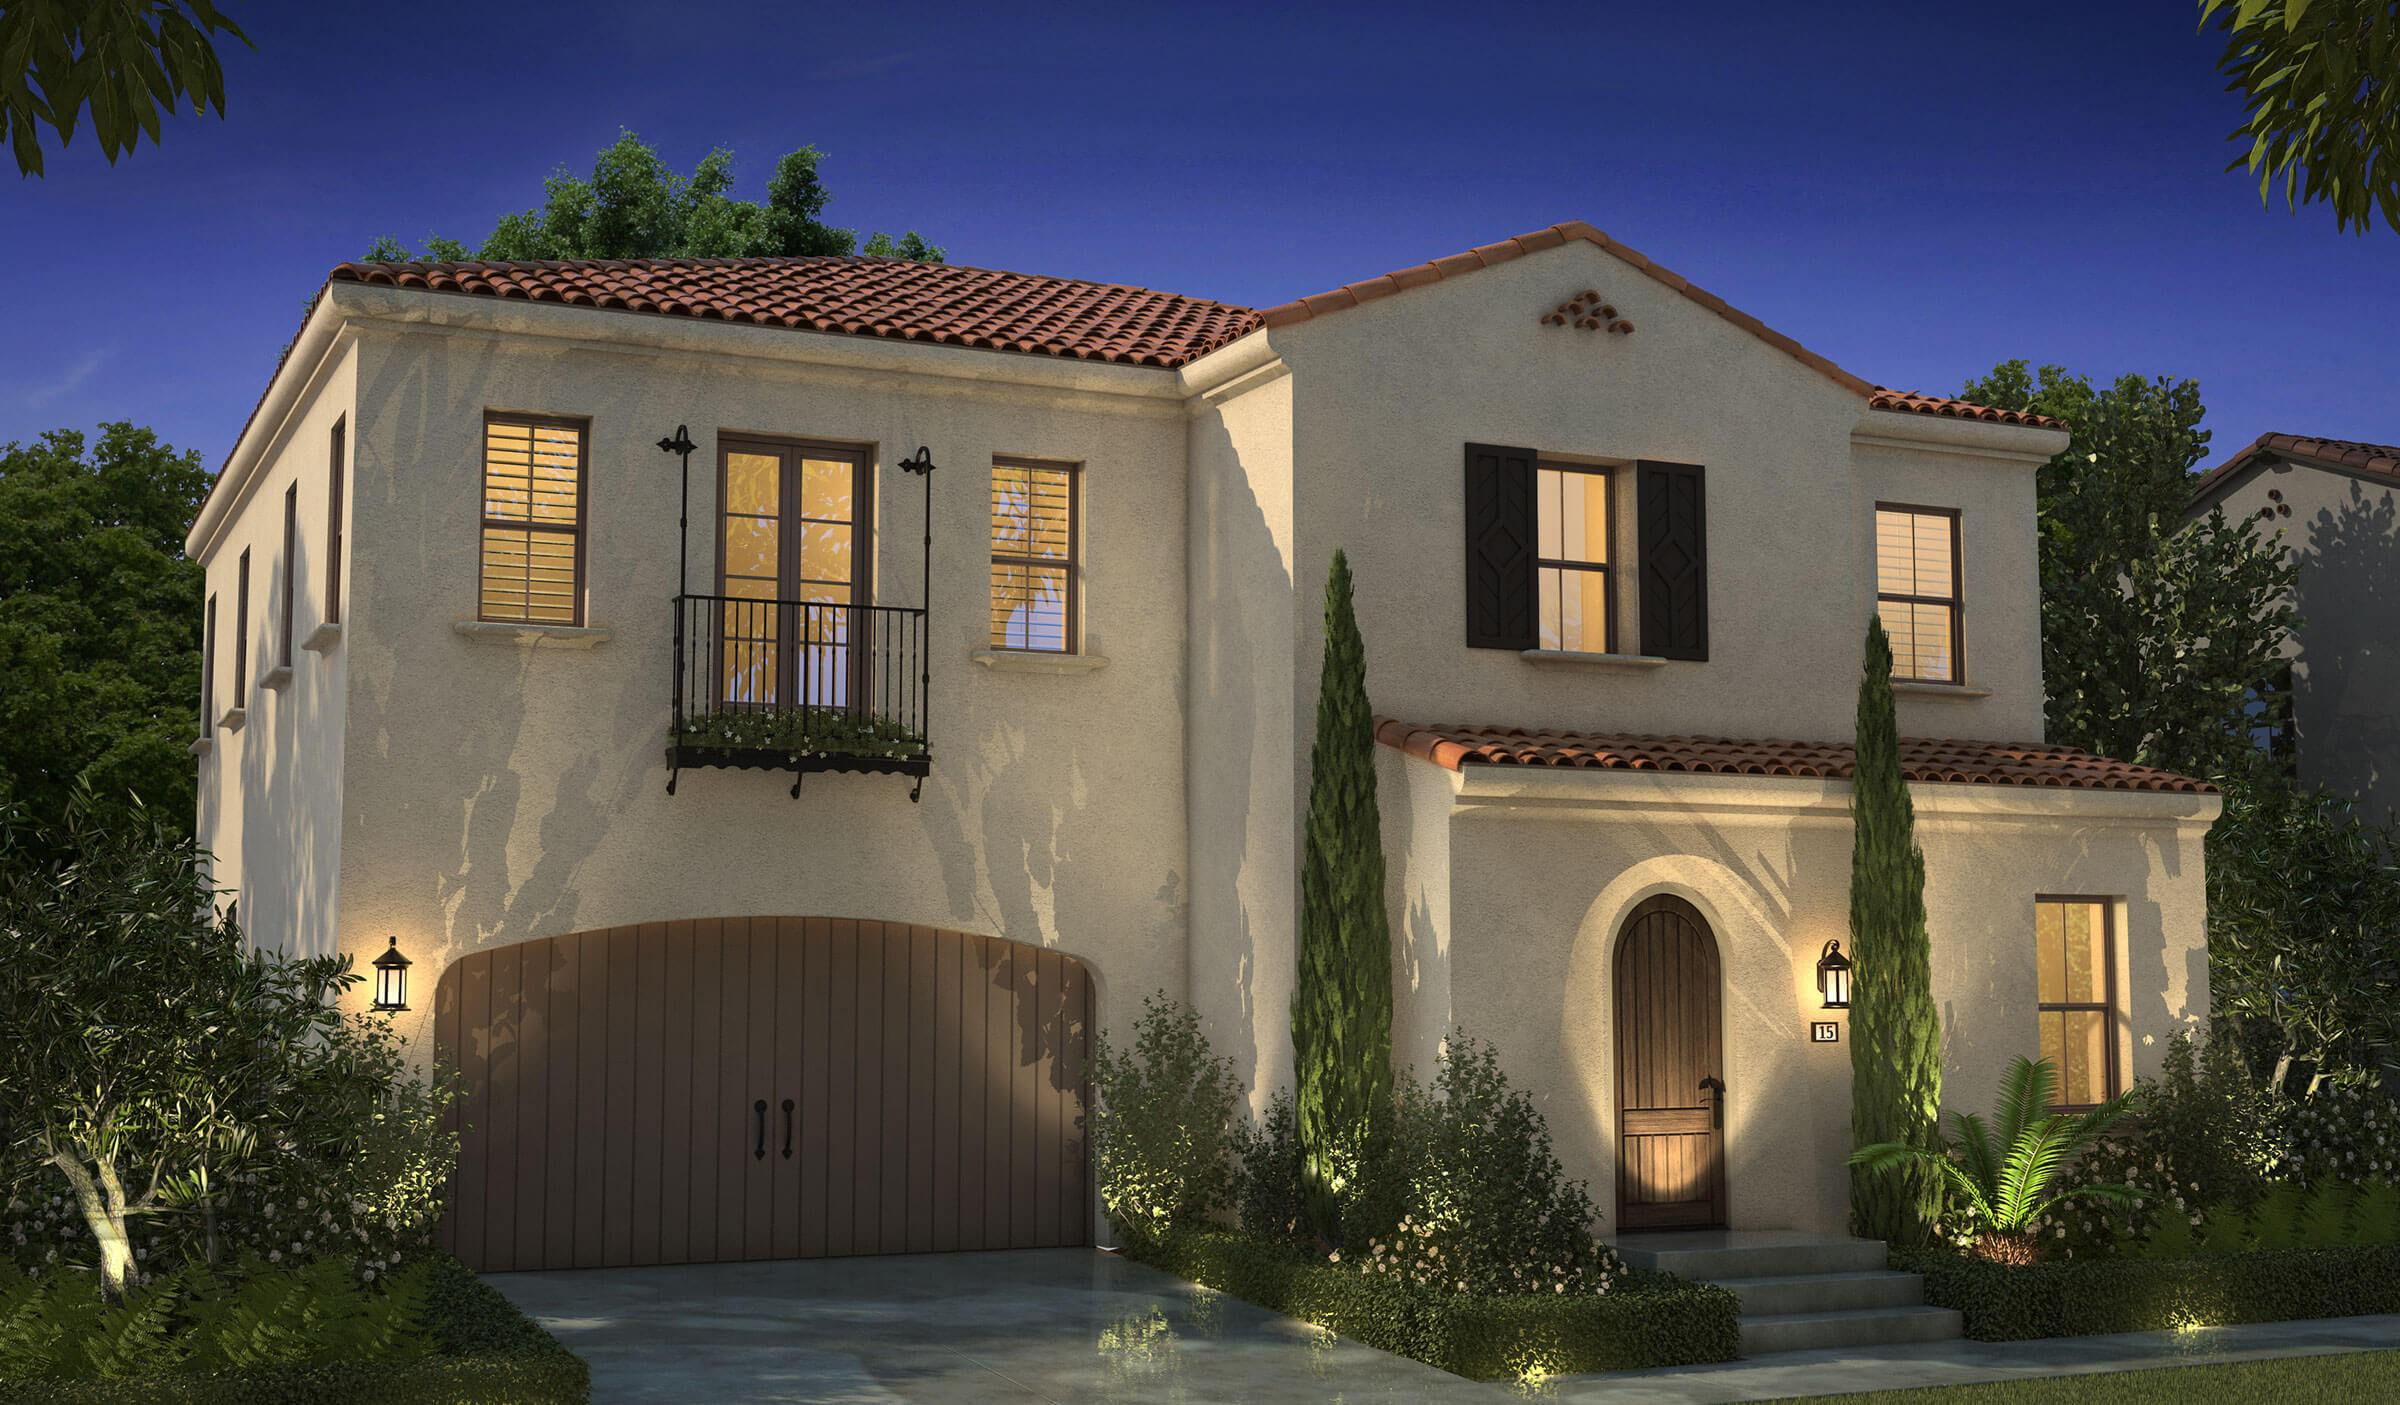 Single Family for Sale at Calistoga At Eastwood Village - Residence 1 109 Frontier Irvine, California 92620 United States